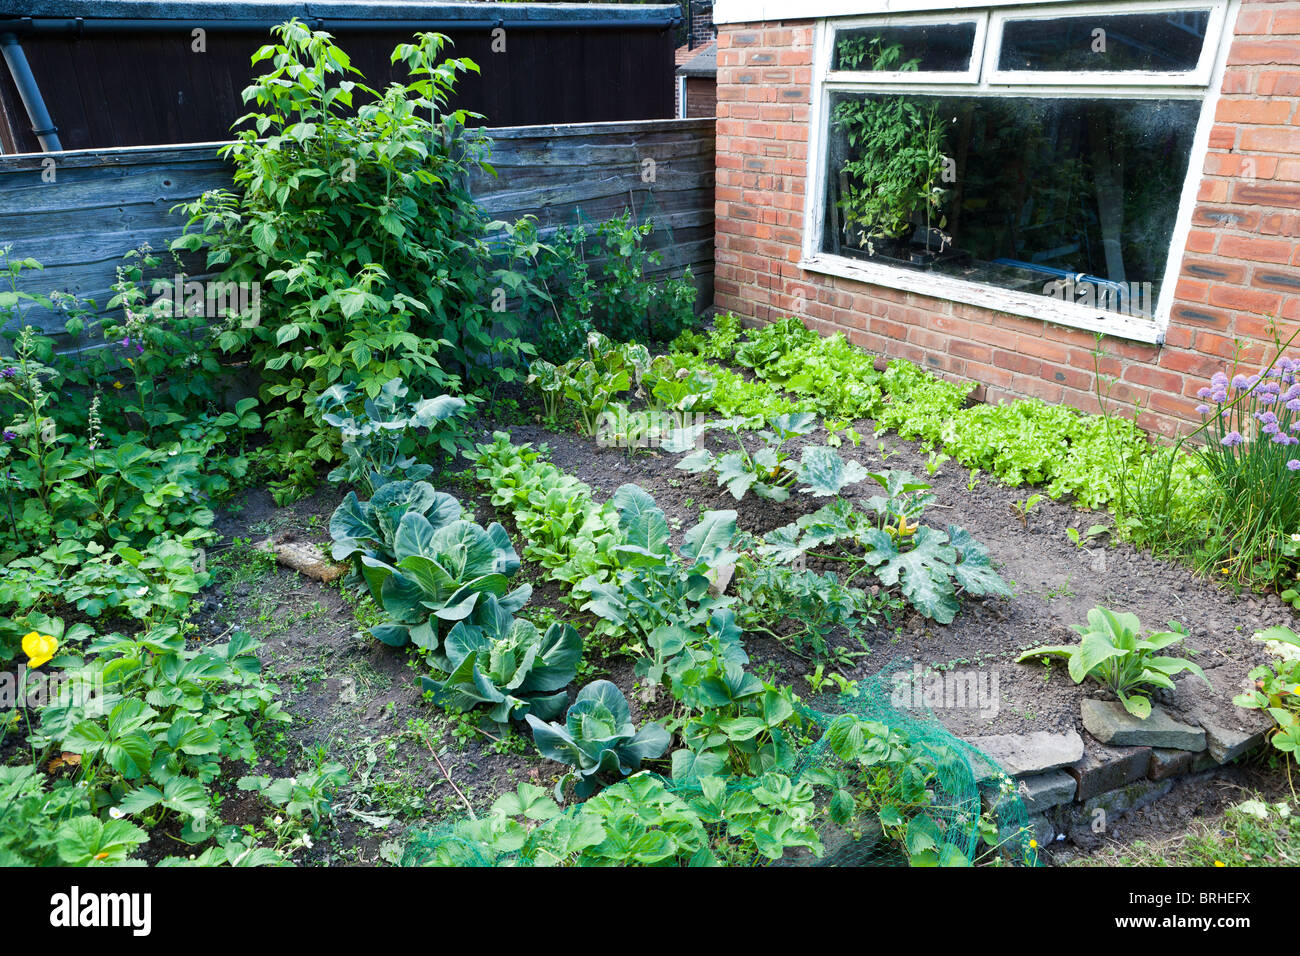 Vegetable patch in a back garden - Stock Image